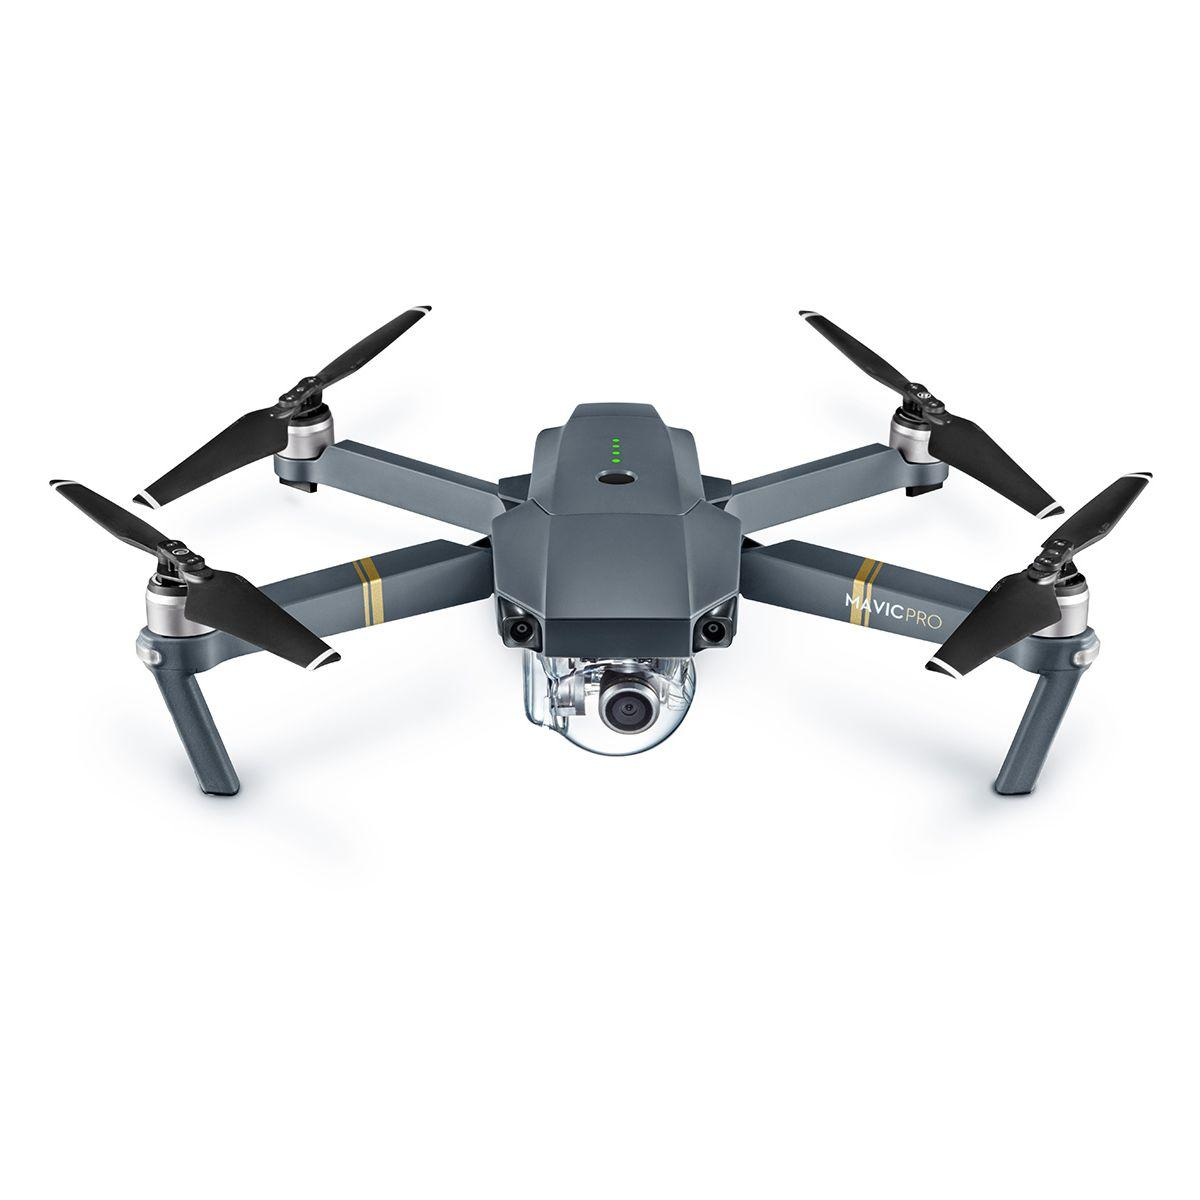 Drone dji mavic pro (photo)